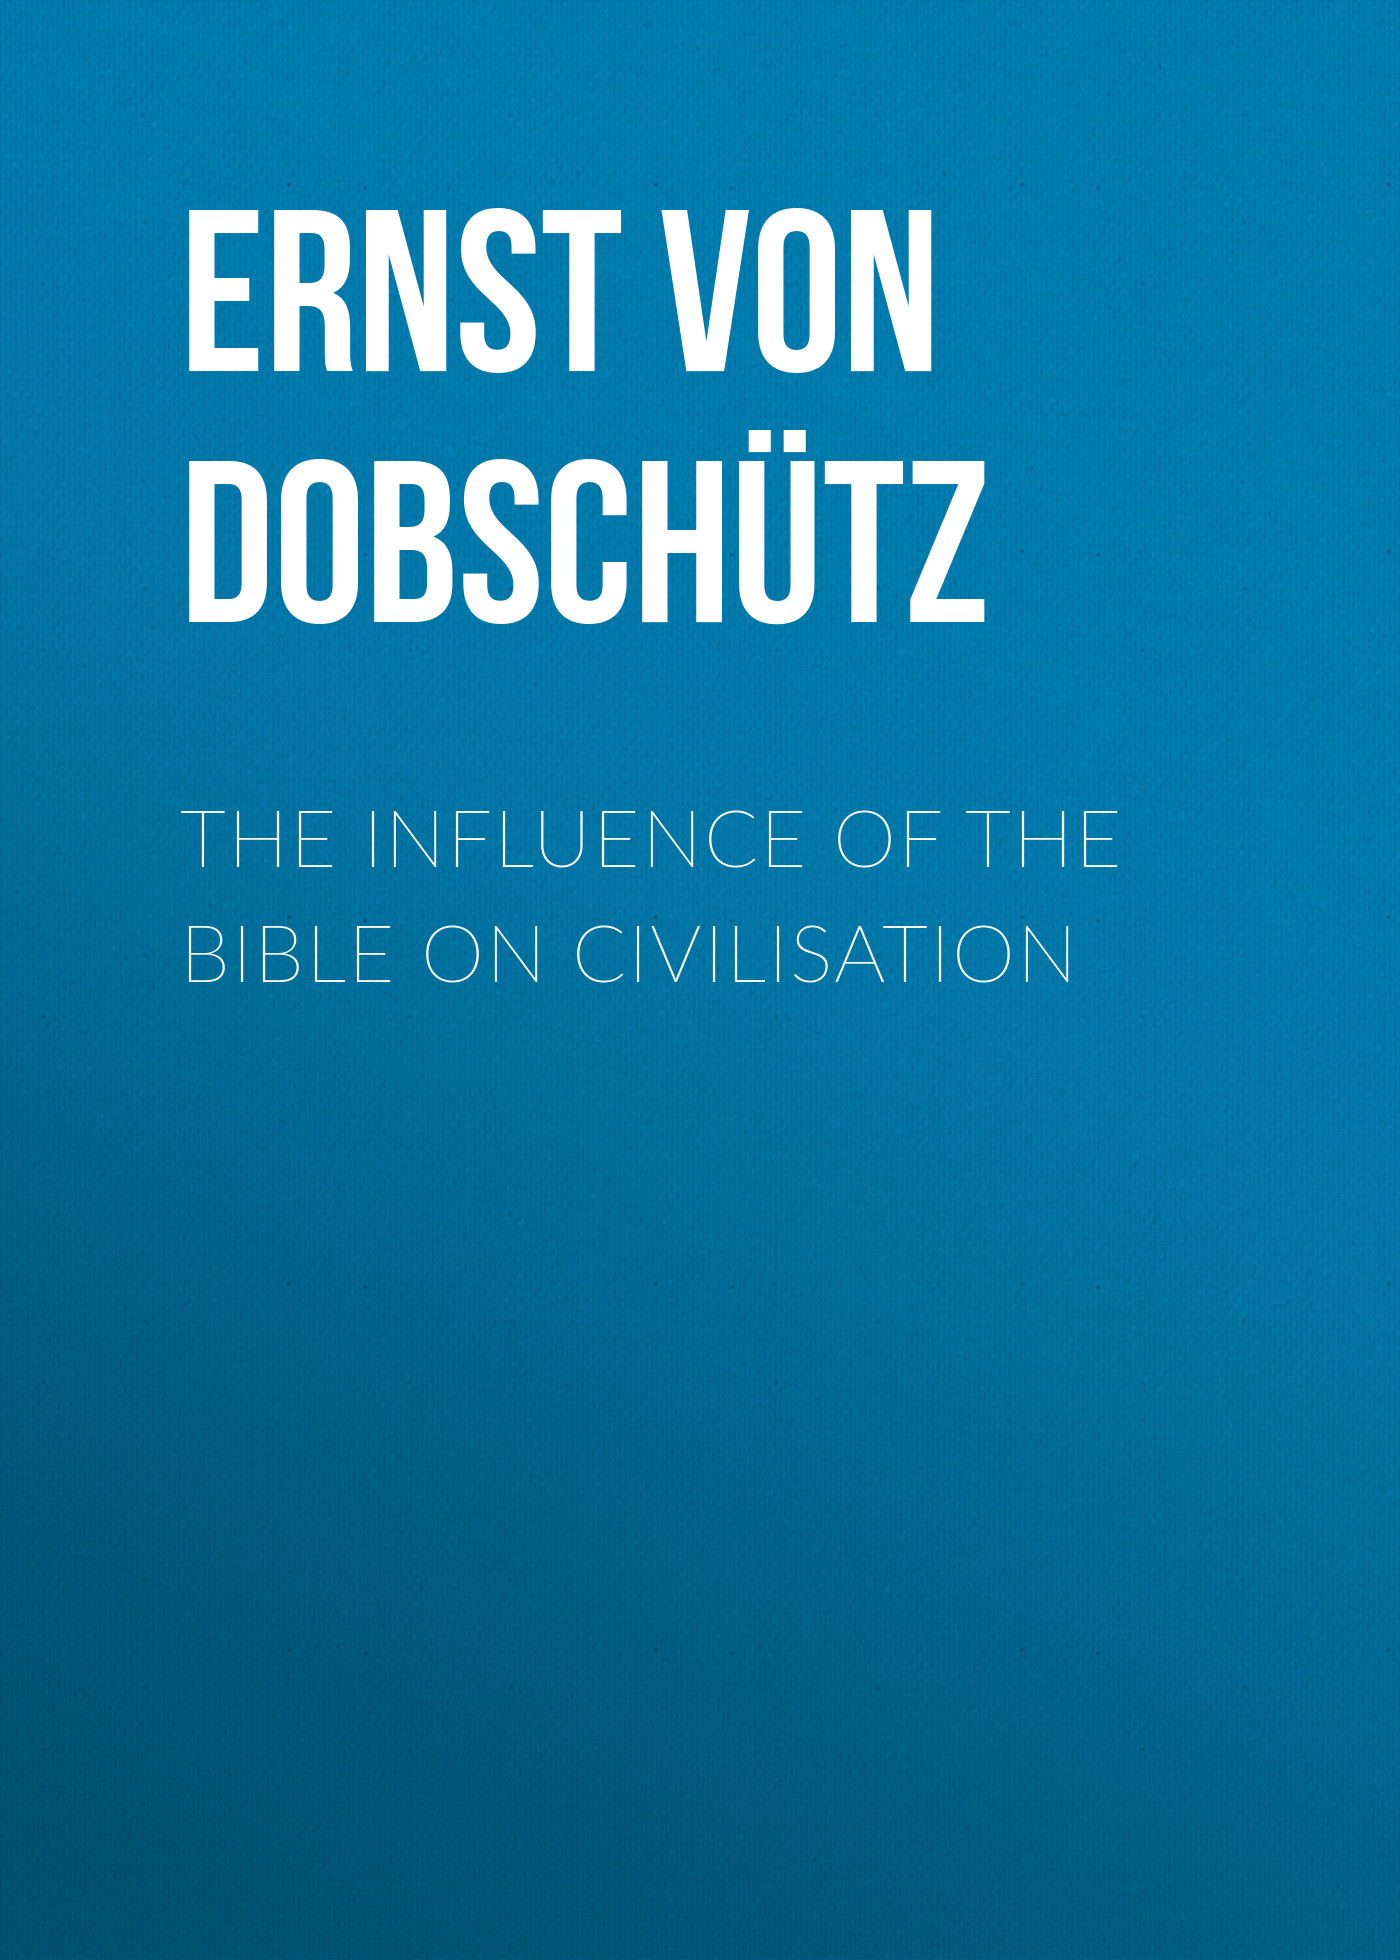 Ernst von Dobschütz The Influence of the Bible on Civilisation